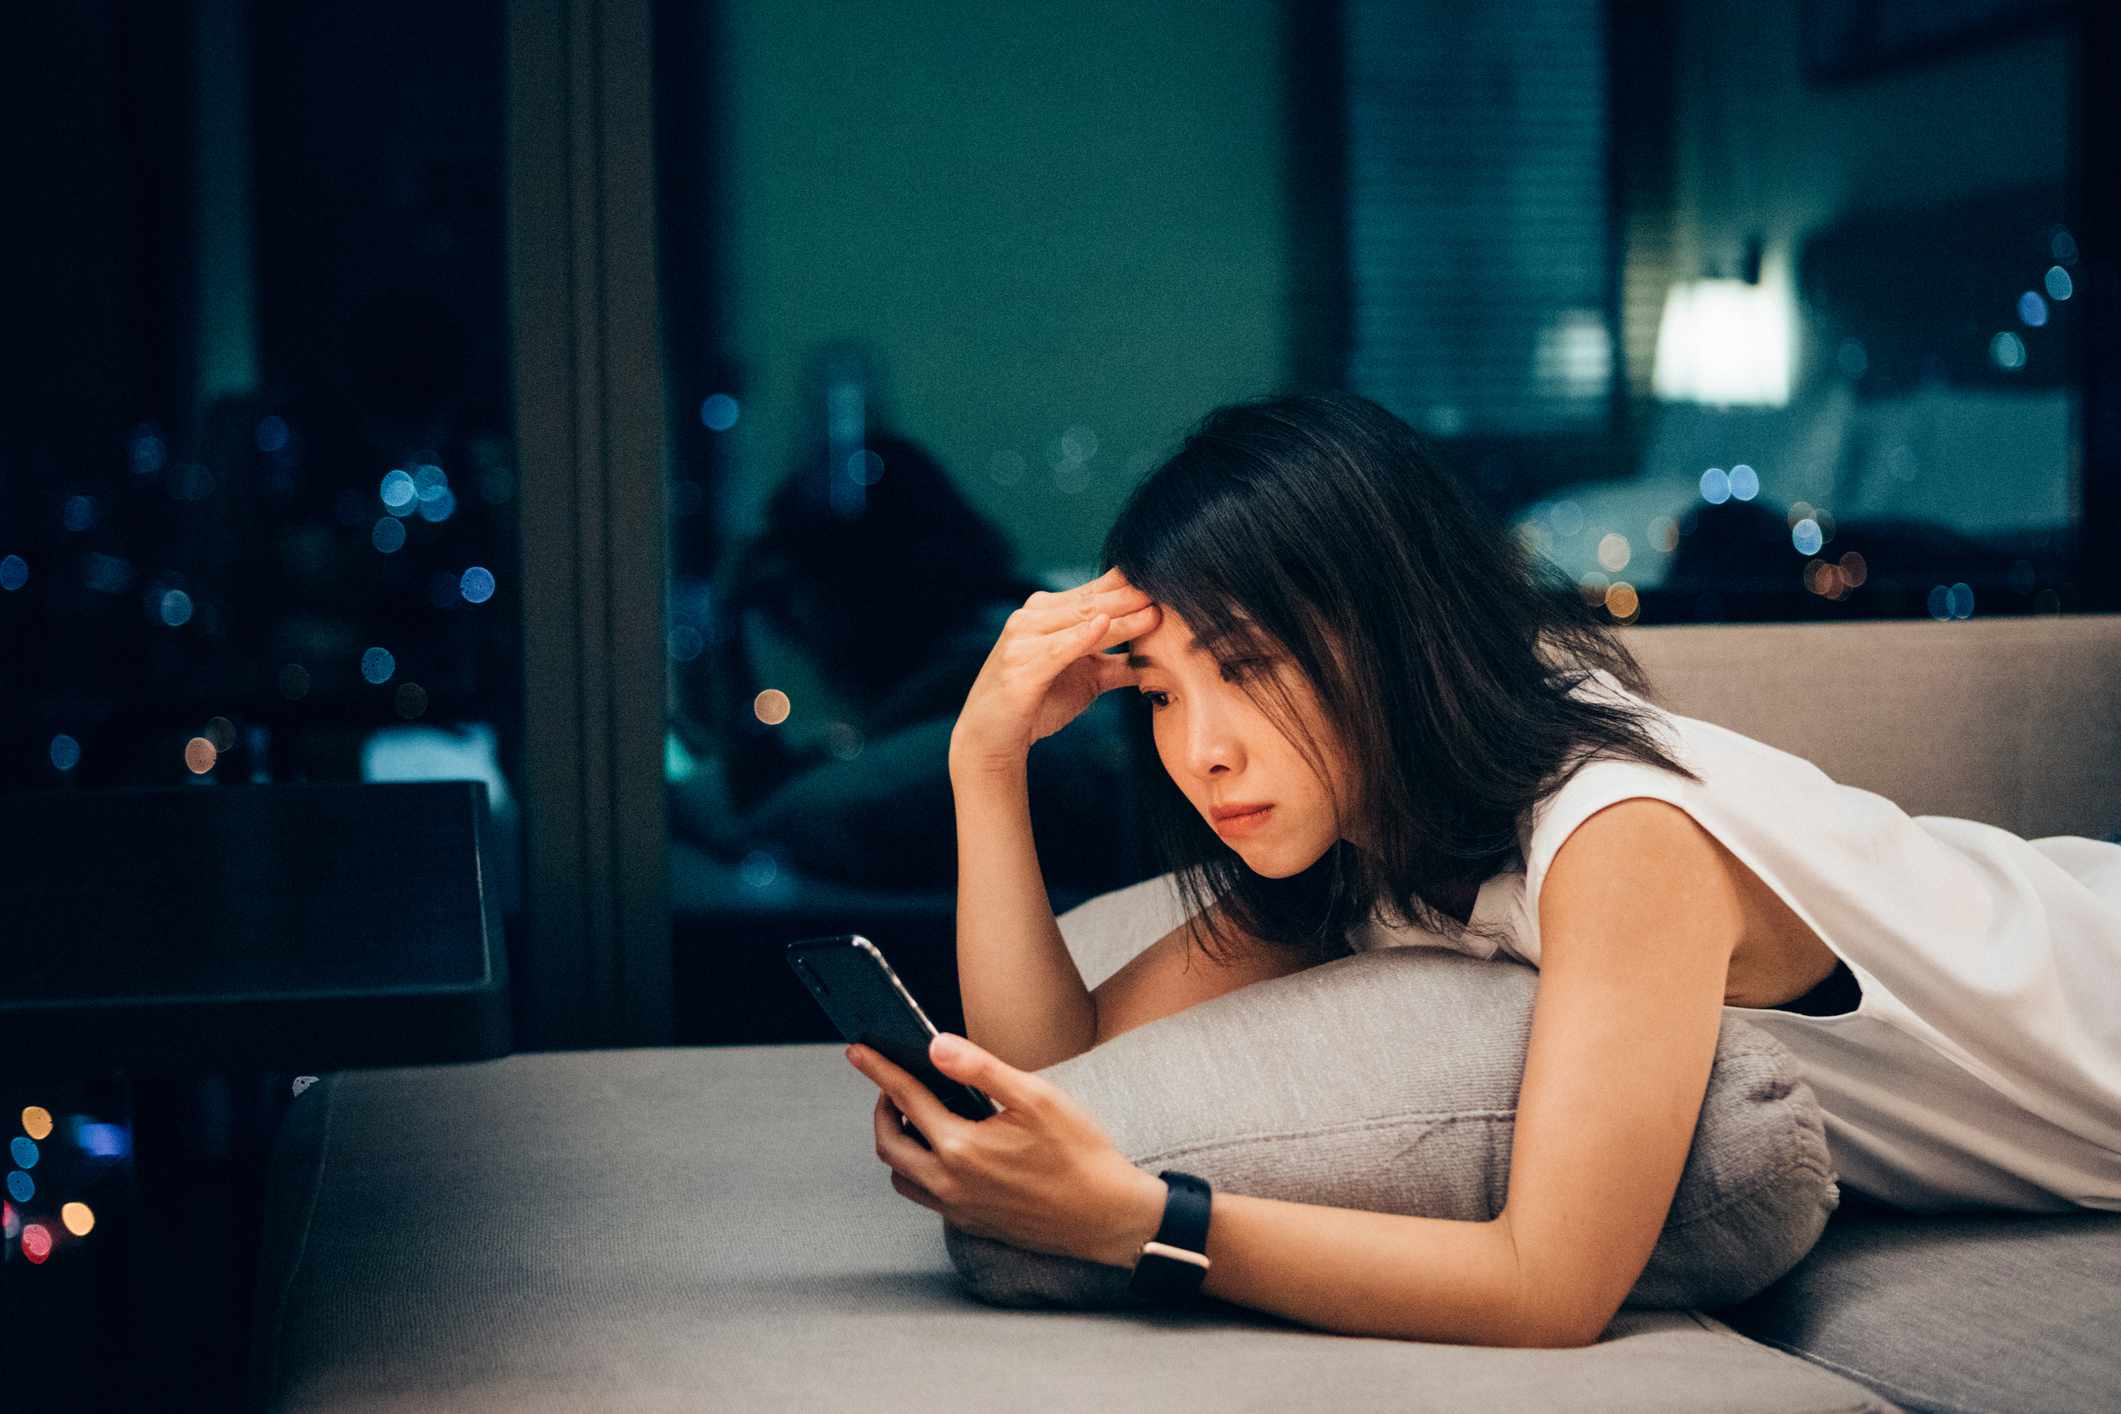 young woman checking her phone at night